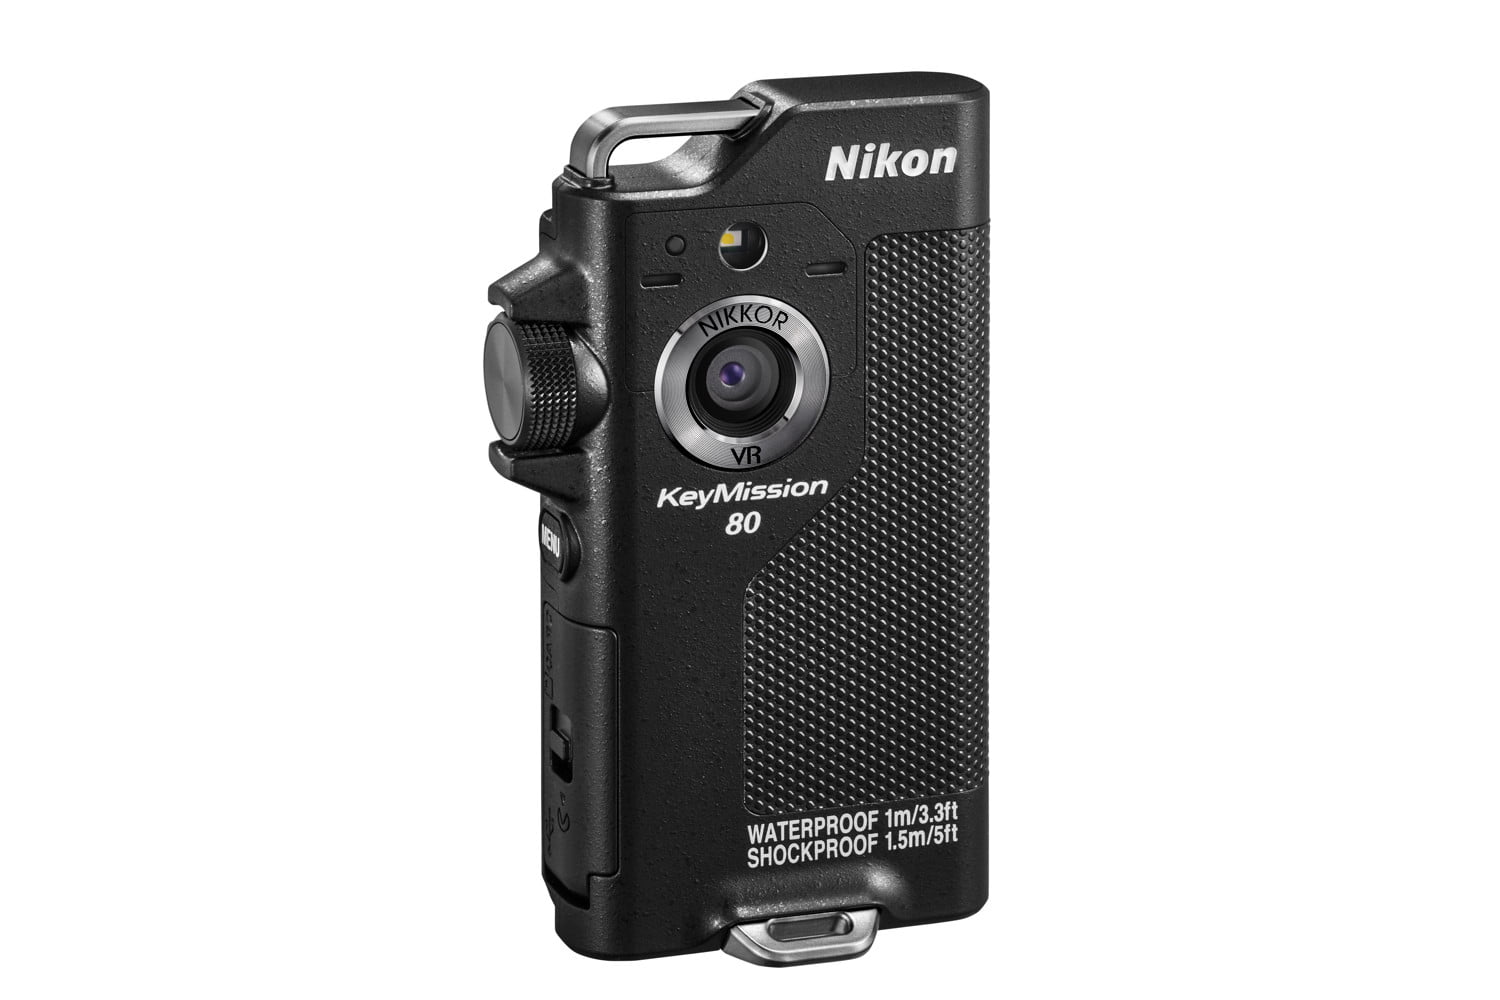 Nikon Introduces 3 `KeyMission' Action Video Cameras